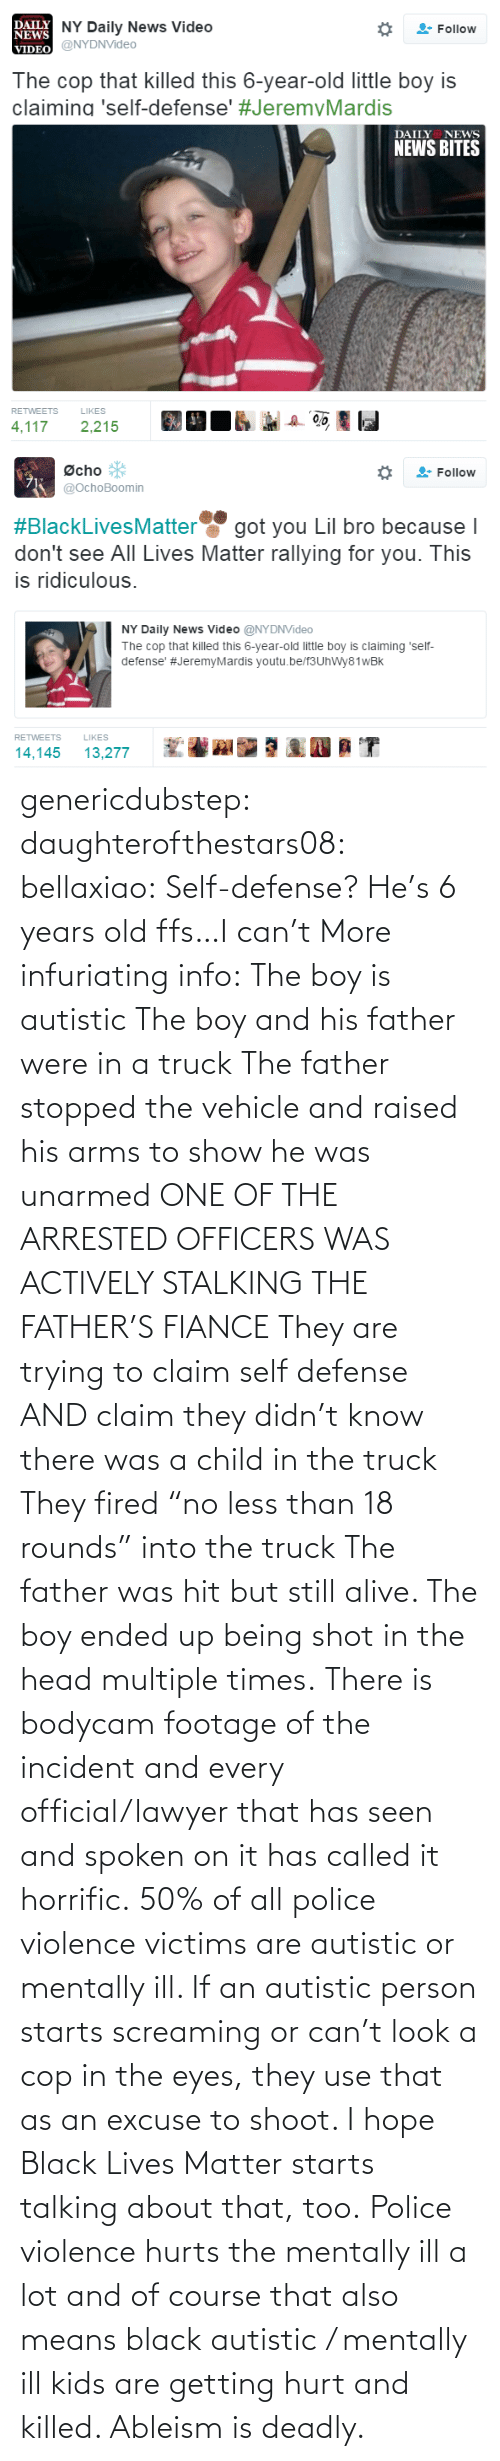 "Years Old: genericdubstep: daughterofthestars08:  bellaxiao:  Self-defense? He's 6 years old ffs…I can't  More infuriating info: The boy is autistic The boy and his father were in a truck The father stopped the vehicle and raised his arms to show he was unarmed ONE OF THE ARRESTED OFFICERS WAS ACTIVELY STALKING THE FATHER'S FIANCE They are trying to claim self defense AND claim they didn't know there was a child in the truck They fired ""no less than 18 rounds"" into the truck The father was hit but still alive. The boy ended up being shot in the head multiple times. There is bodycam footage of the incident and every official/lawyer that has seen and spoken on it has called it horrific.  50% of all police violence victims are autistic or mentally ill. If an autistic person starts screaming or can't look a cop in the eyes, they use that as an excuse to shoot. I hope Black Lives Matter starts talking about that, too. Police violence hurts the mentally ill a lot and of course that also means black autistic / mentally ill kids are getting hurt and killed. Ableism is deadly."